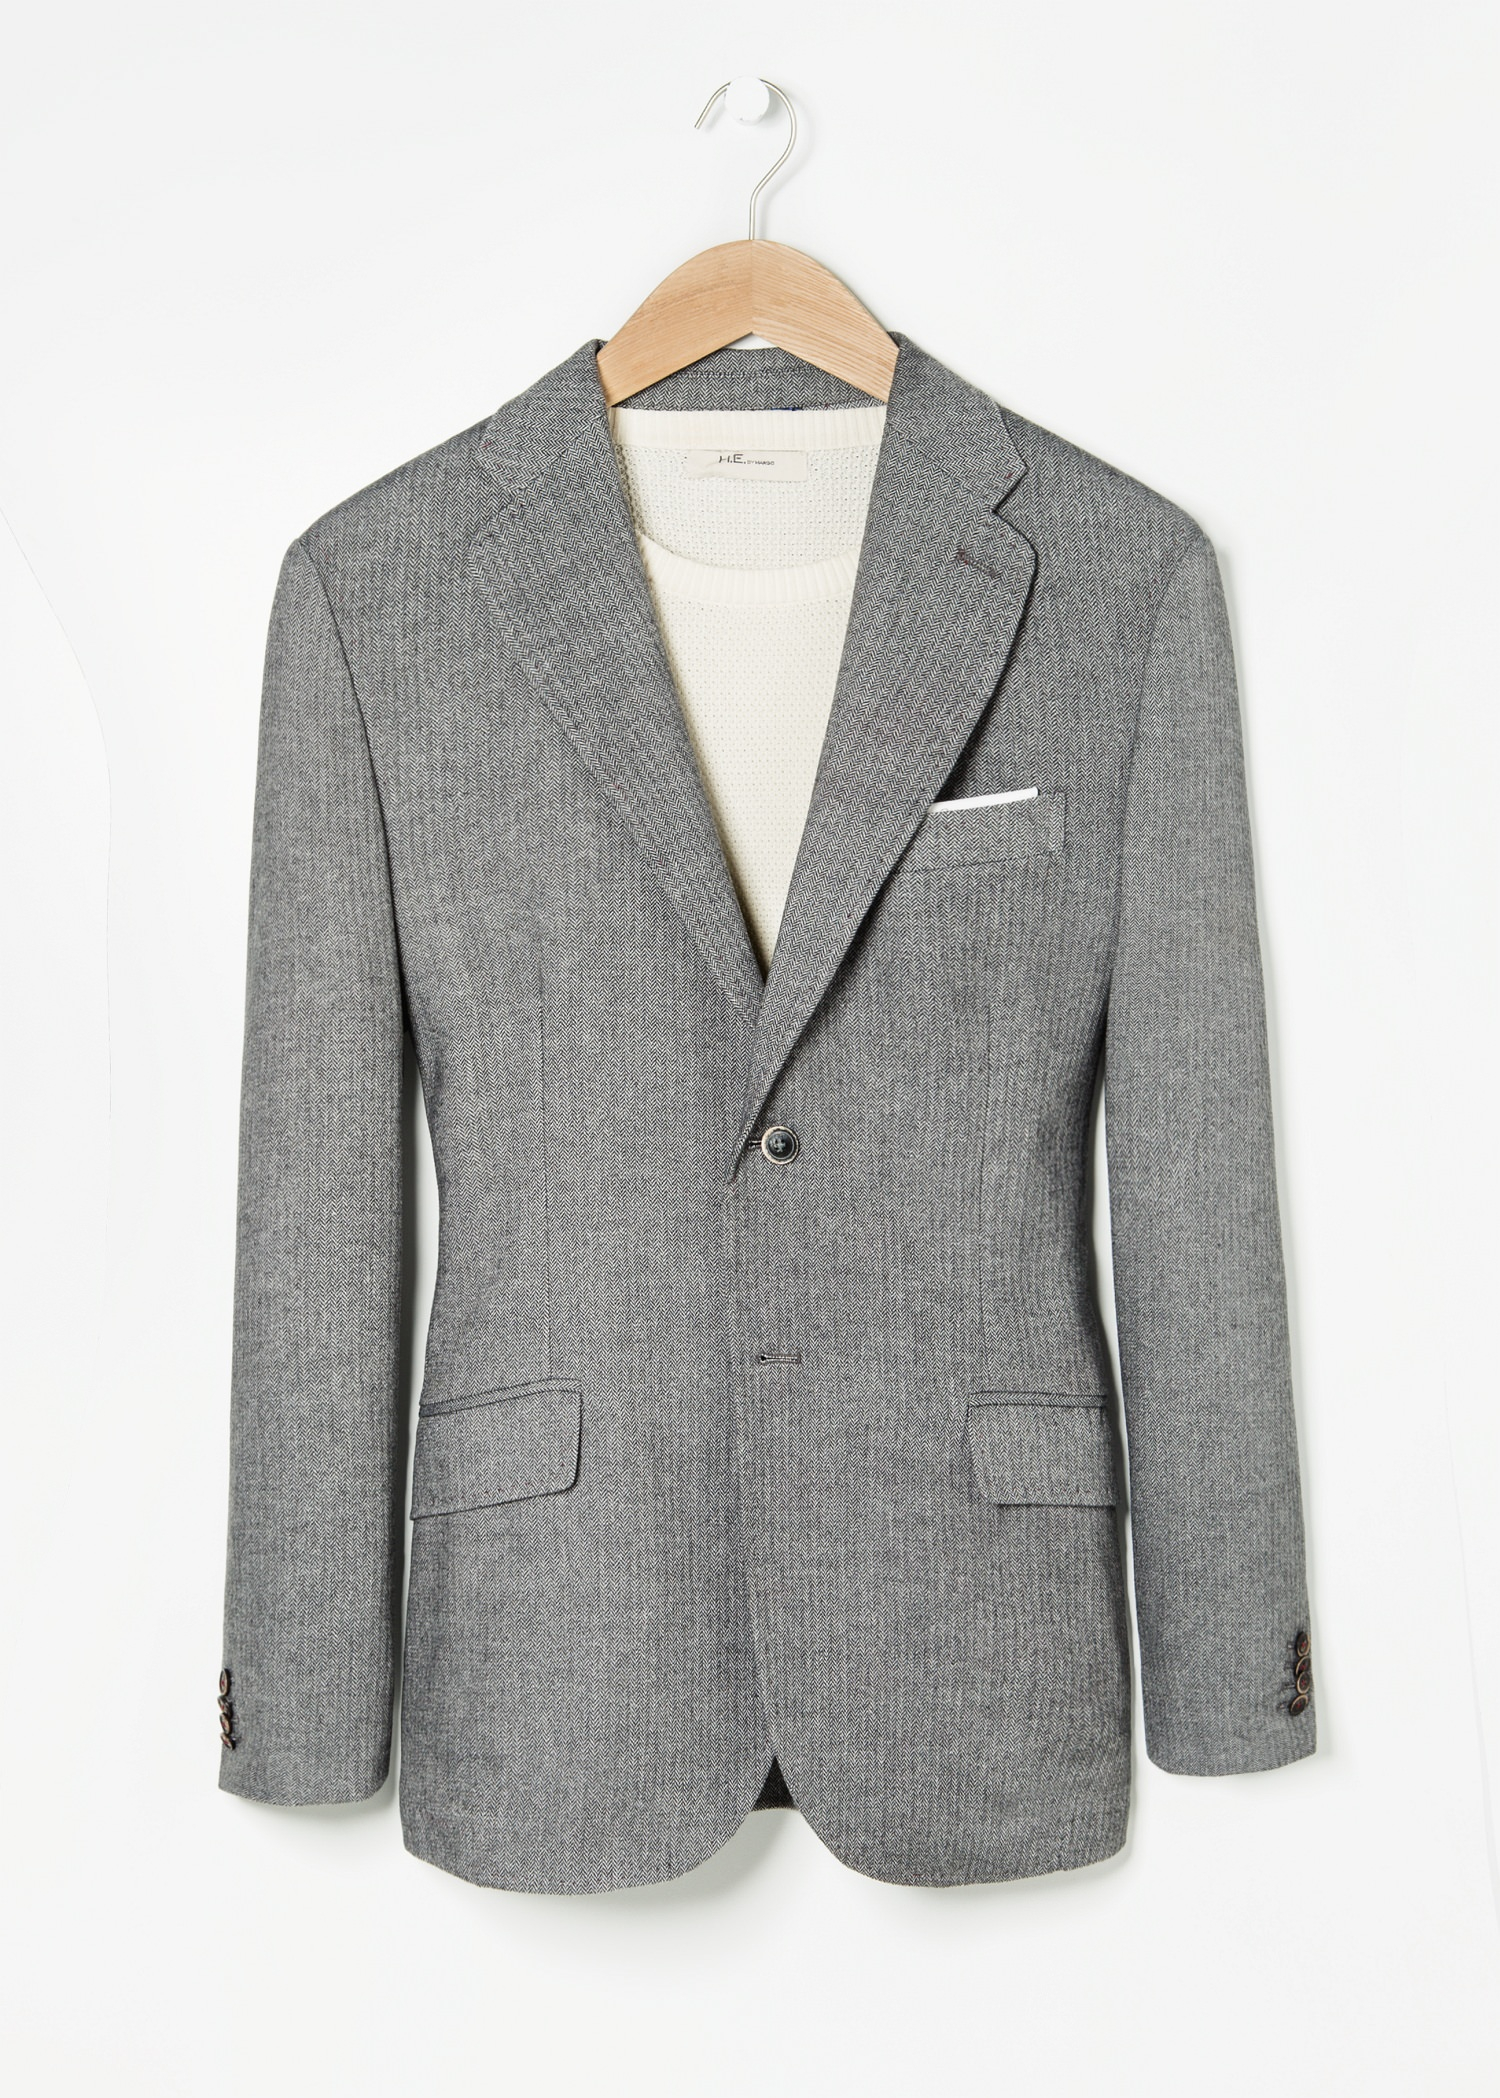 Mango Slim Fit Patterned Suit Blazer In Gray For Men Lyst